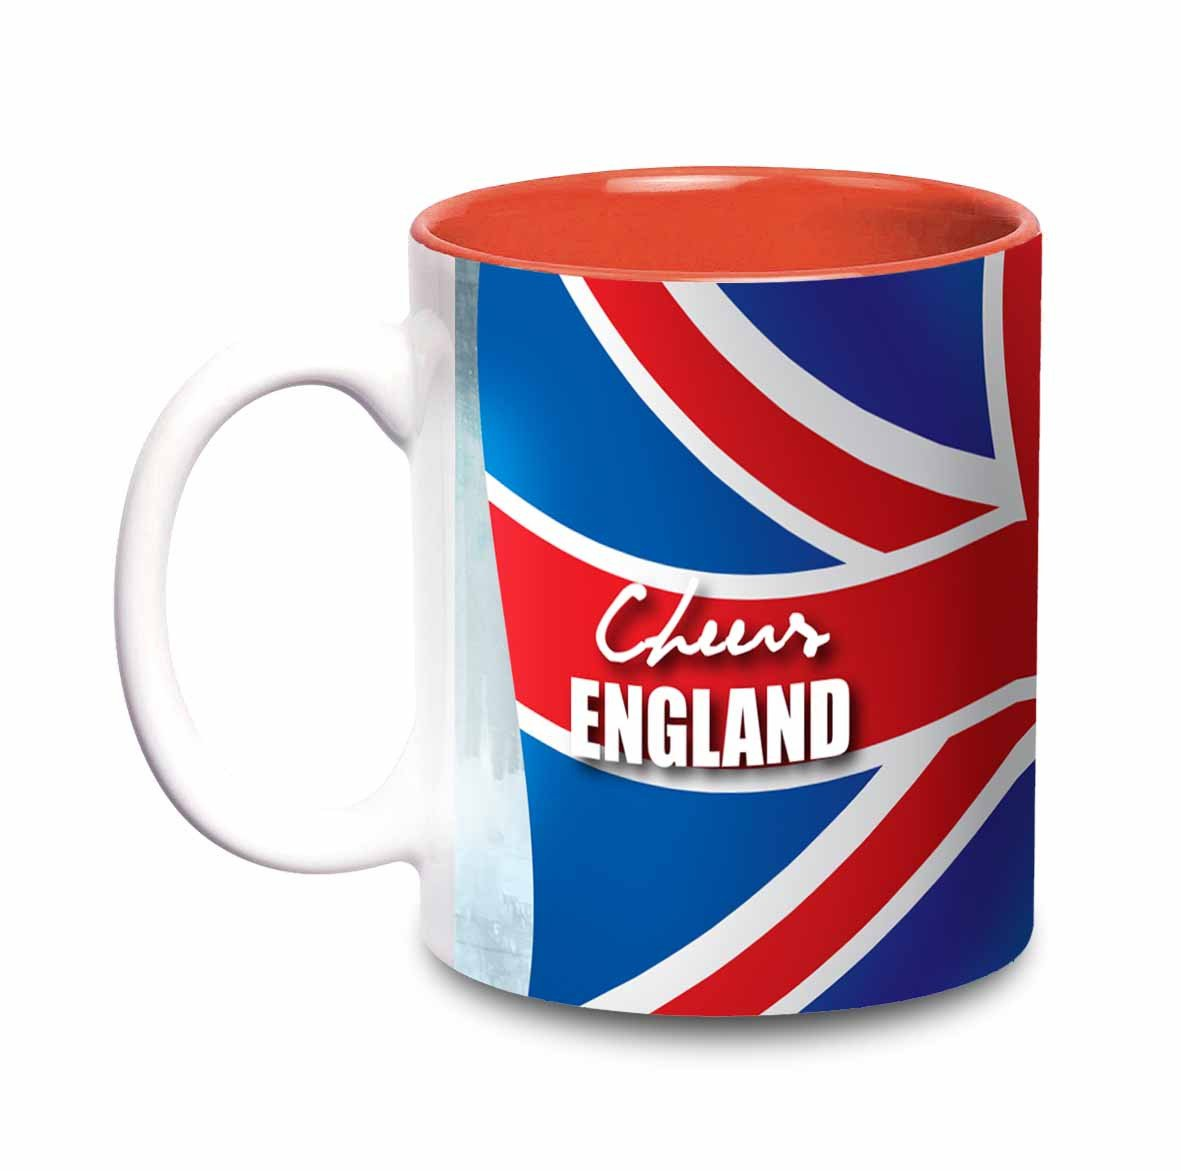 Hot Muggs Cheers England Flags 350 ml, 1 Ceramic Coffee Mugs in Multi Colour Colour by HotMuggs